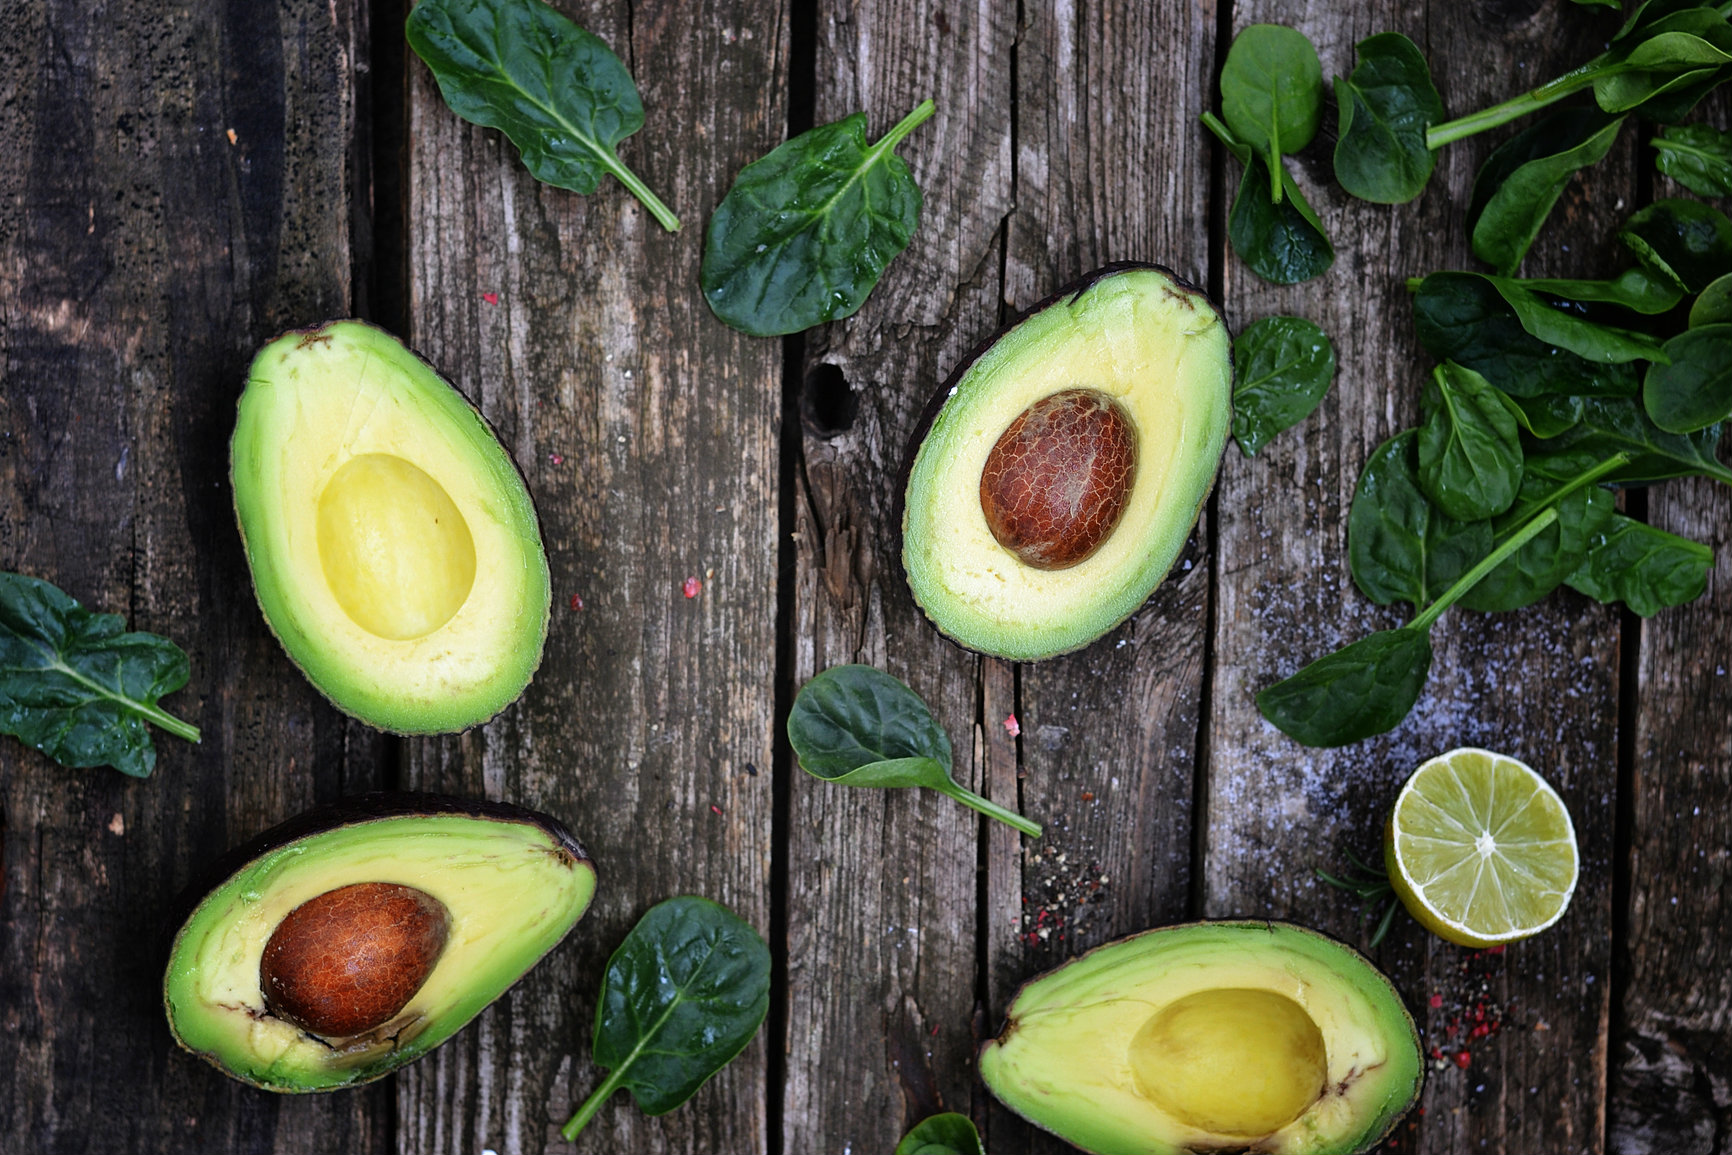 group of cut up avocadoes